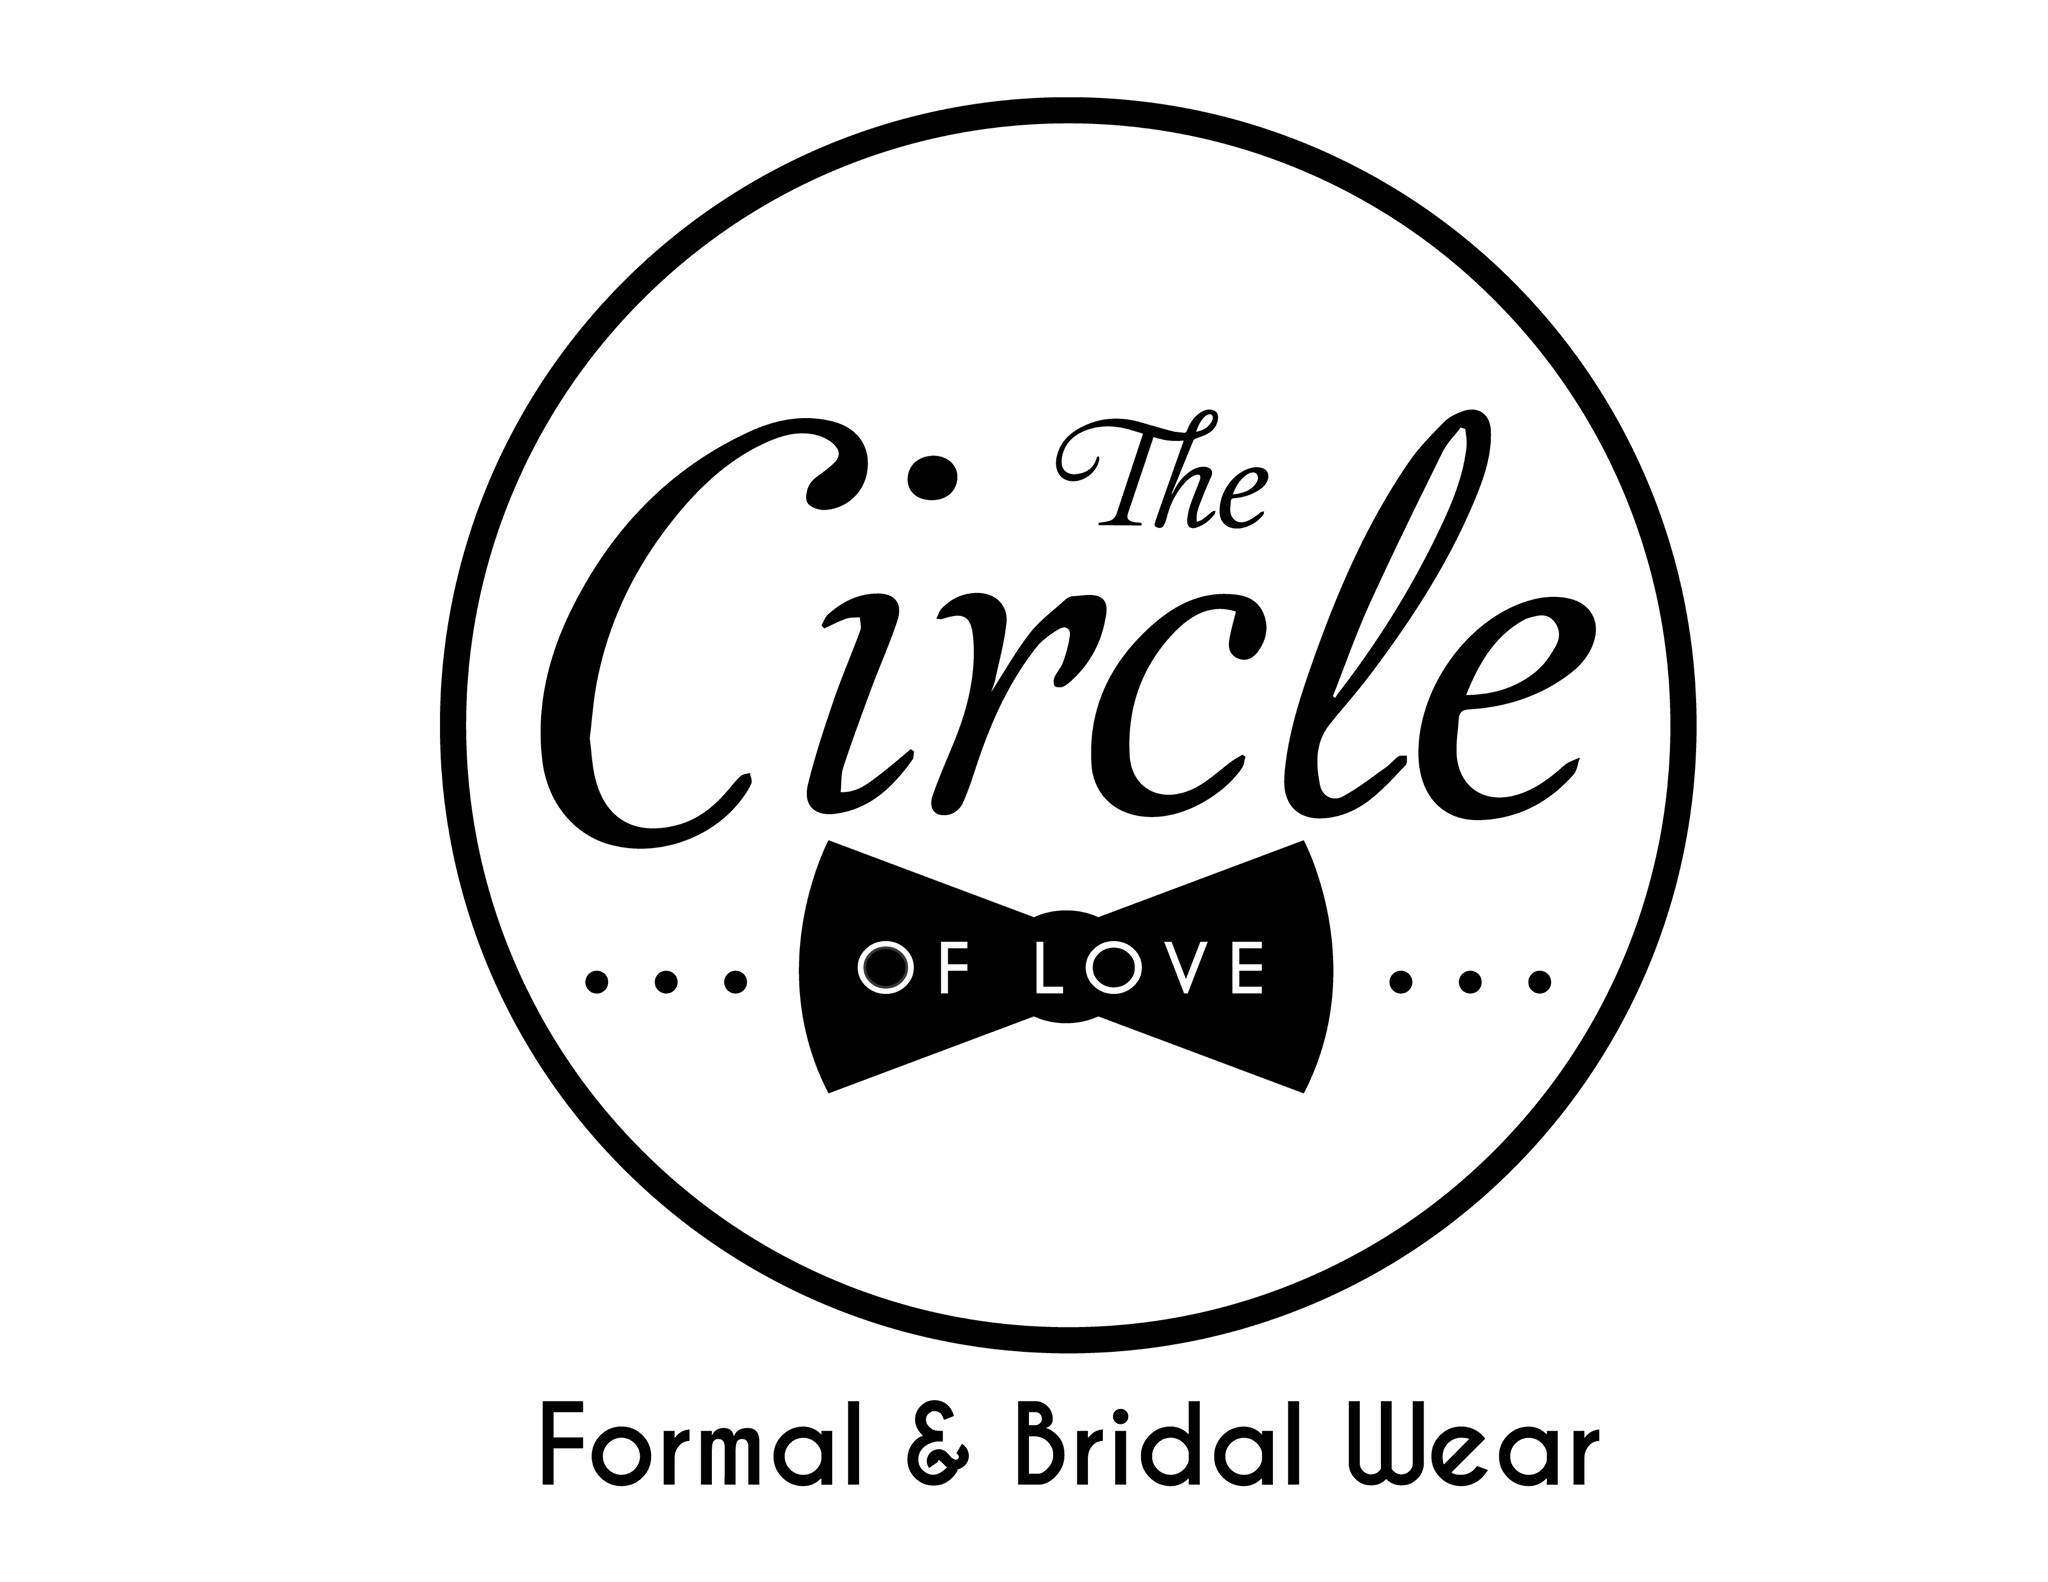 Circle of Love Formal and Bridal Wear